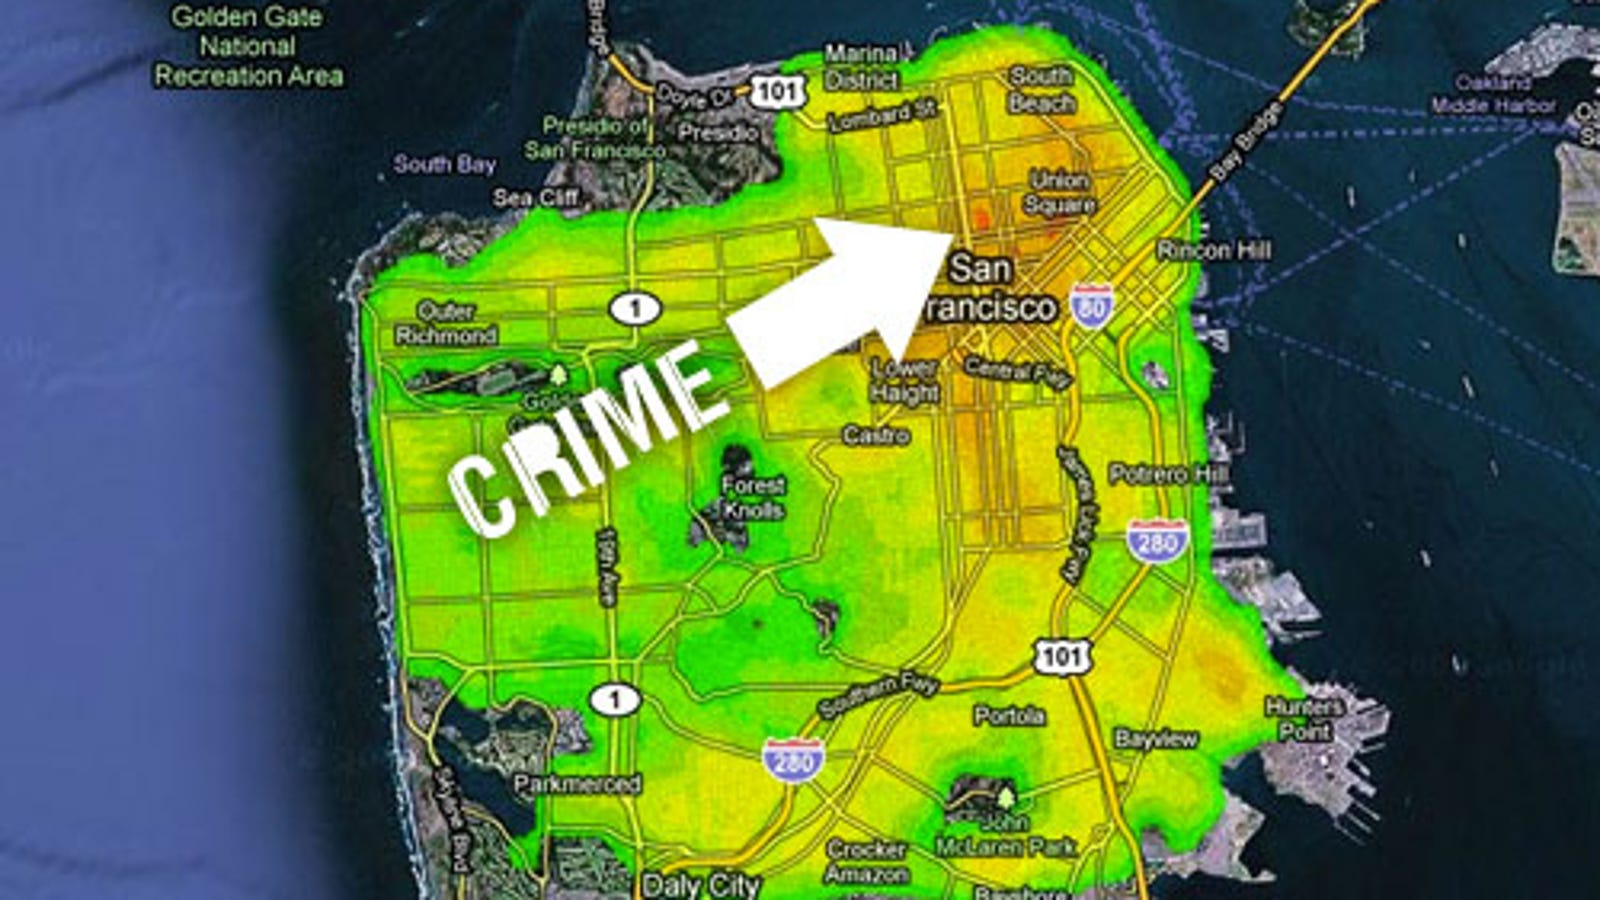 Apartment Search Tool PadMapper Maps Out Crime Statistics to ... on chicago gang map, 2014 chicago crime map, oakland police crime map, chicago city map, chicago crime report 2013, baltimore city crime map, chicago crime stats, chicago murder map, chicago bad side, chicago crime chart, woodlawn chicago map, shootings in chicago map, chicago and chicagoland map suburbs, chicago neighborhood map, trulia crime map, chicago crime statistics, crime frequency map, chicago crime map google, chicago interactive zoning map,